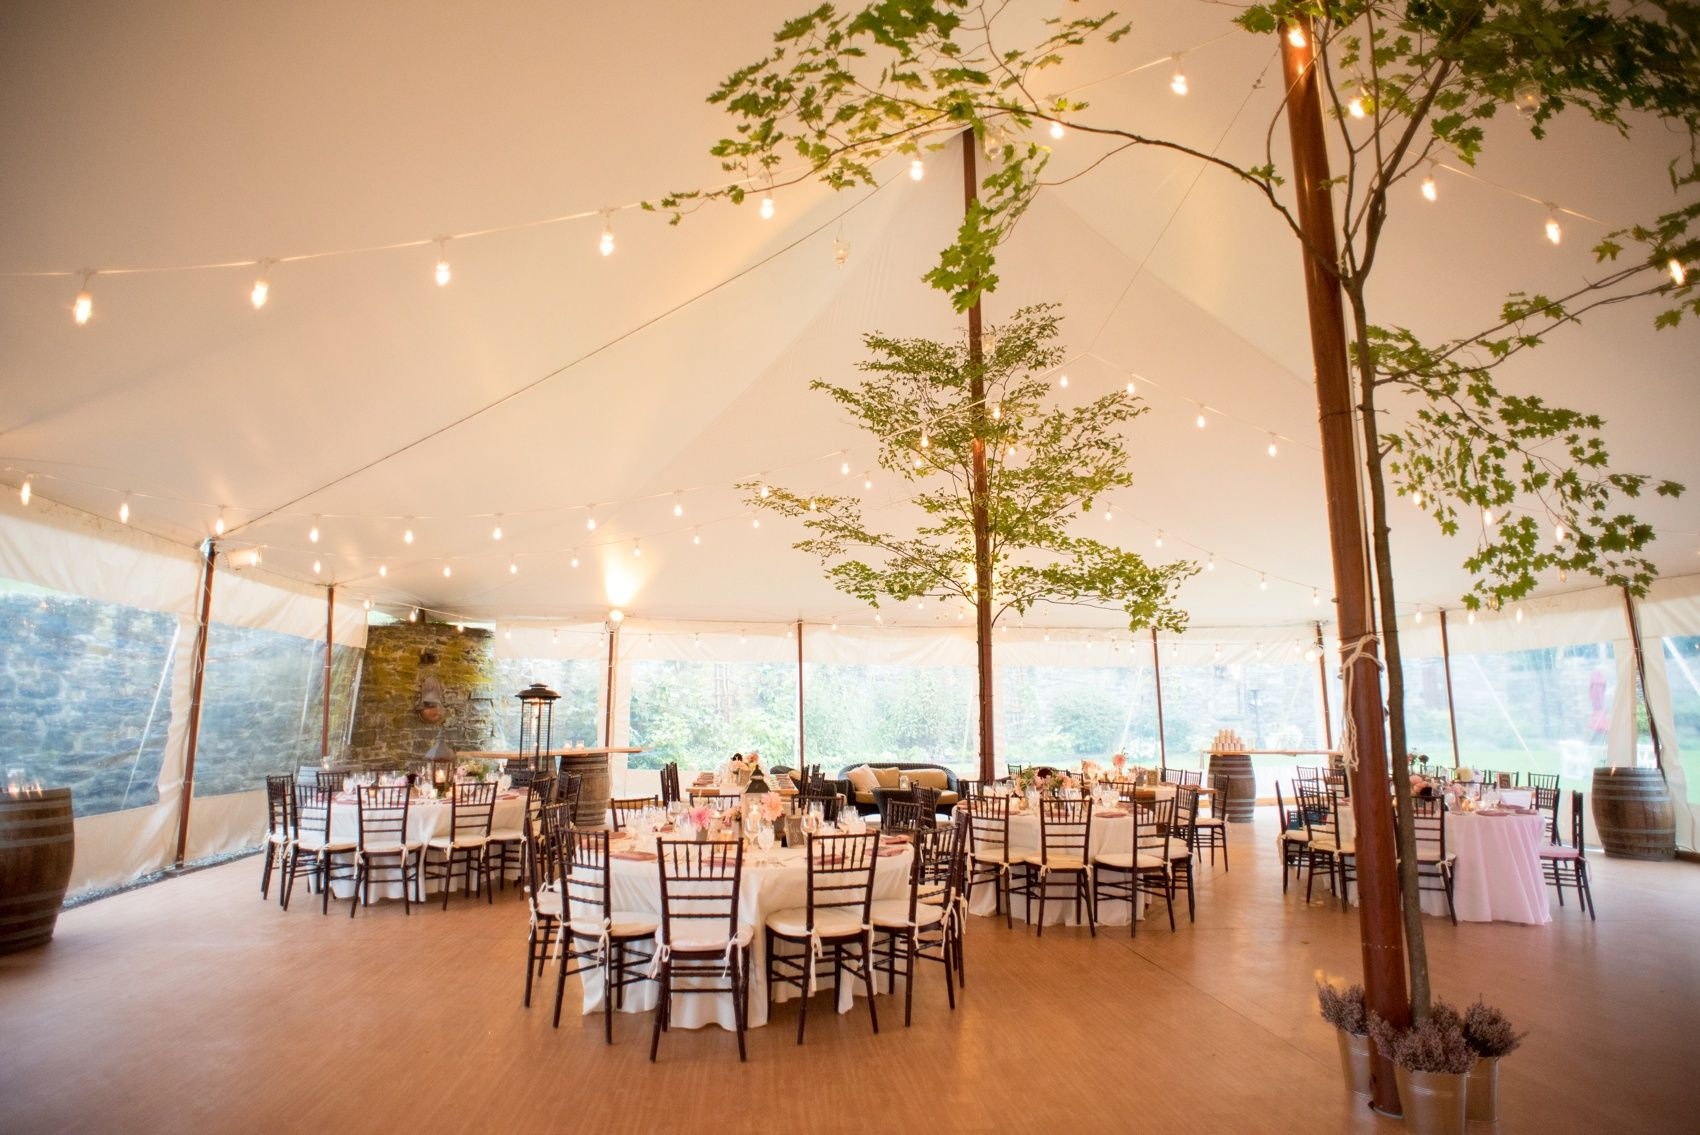 A Red Maple Vineyard Wedding Reception With Trees Under Tent And Pink Dusty Rose Accents